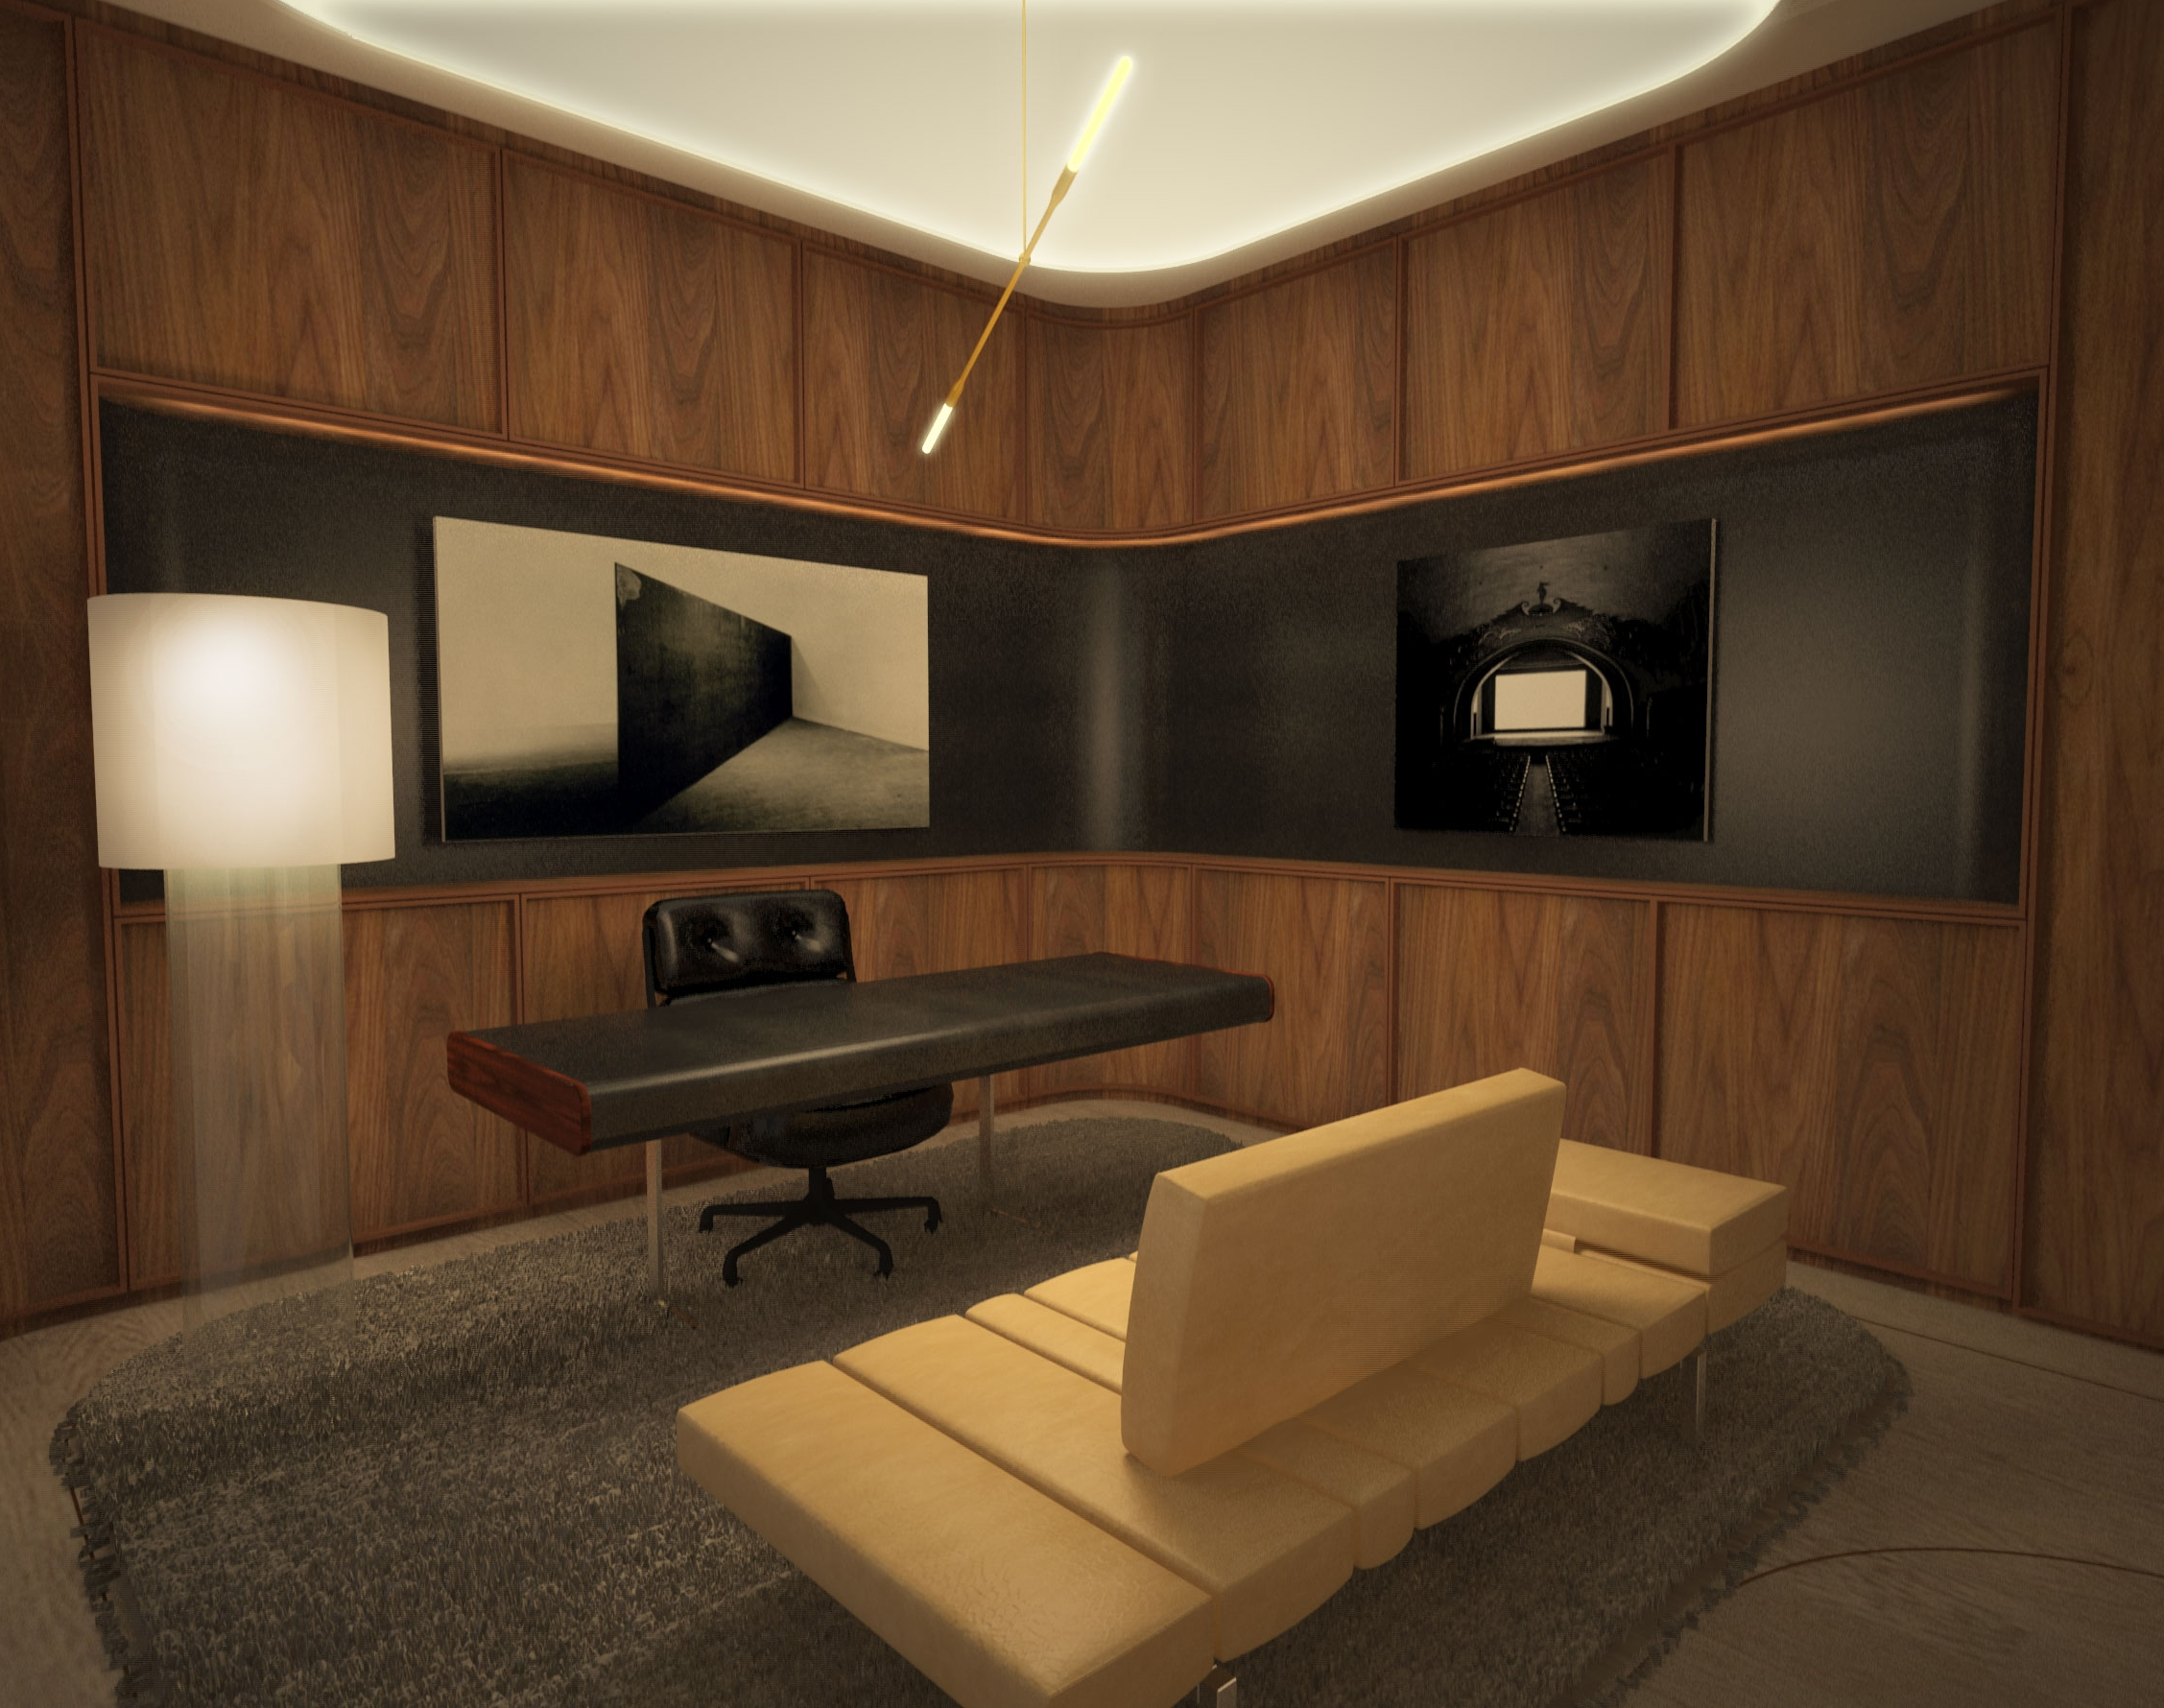 blog to designer become an classes of latest gallery new cool ideas san nyc room designs jobs make interior antonio consideration small internships s design studio apartment living your how for with york tags